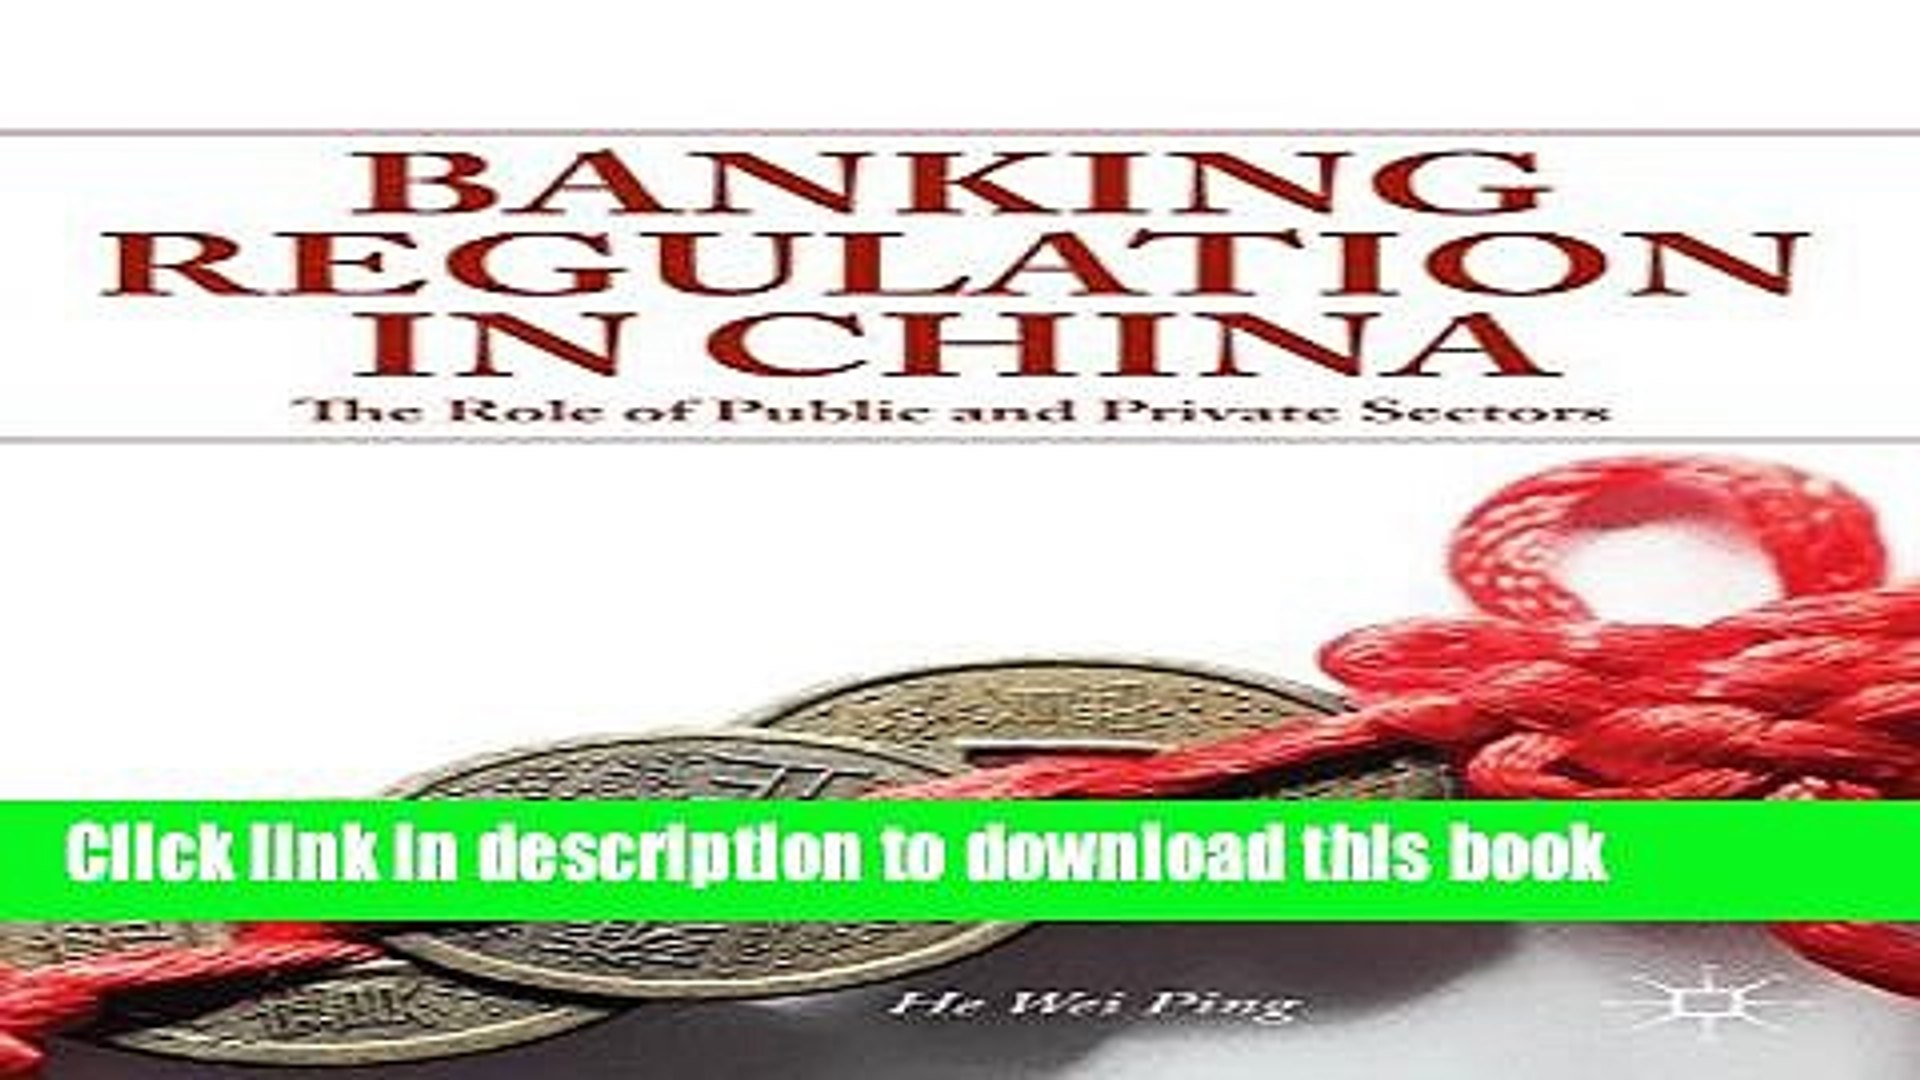 [PDF] Banking Regulation in China: The Role of Public and Private Sectors Read Online